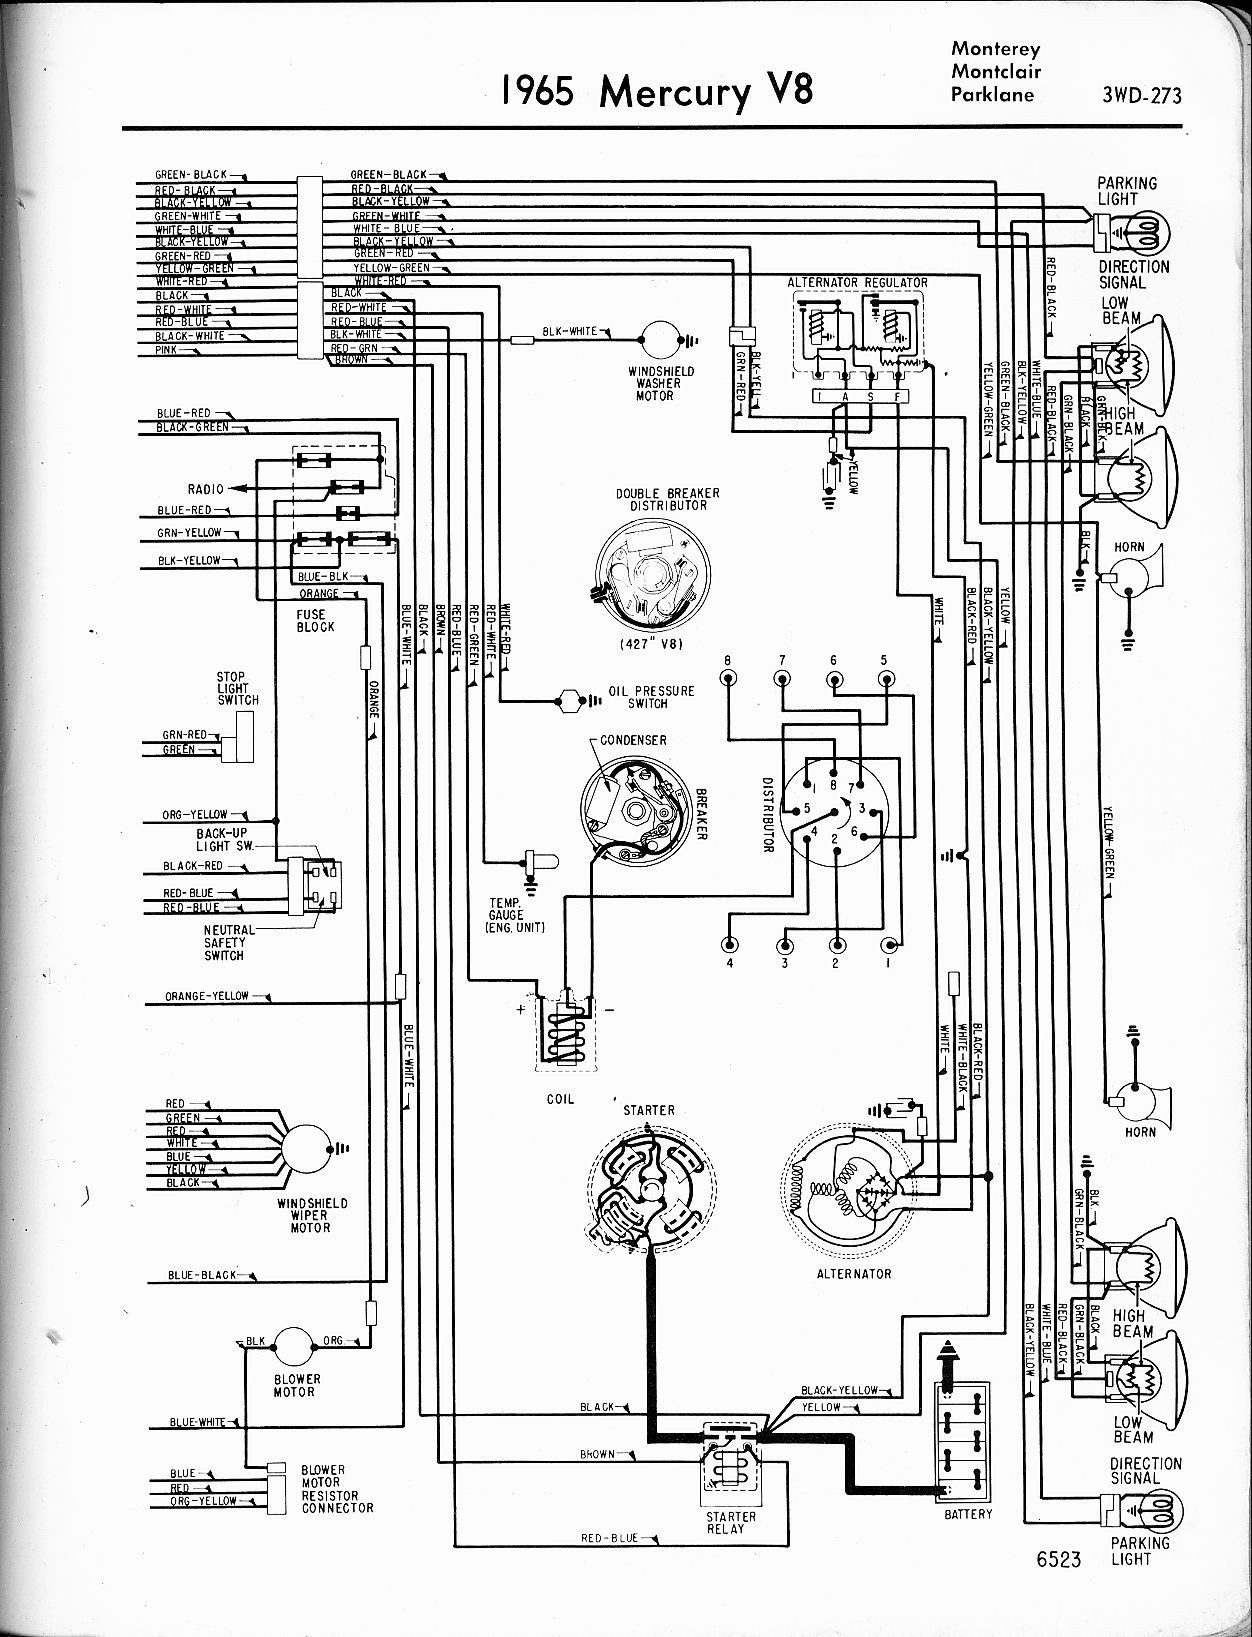 1999 Mercury Cougar Engine    Diagram      My    Wiring       DIagram